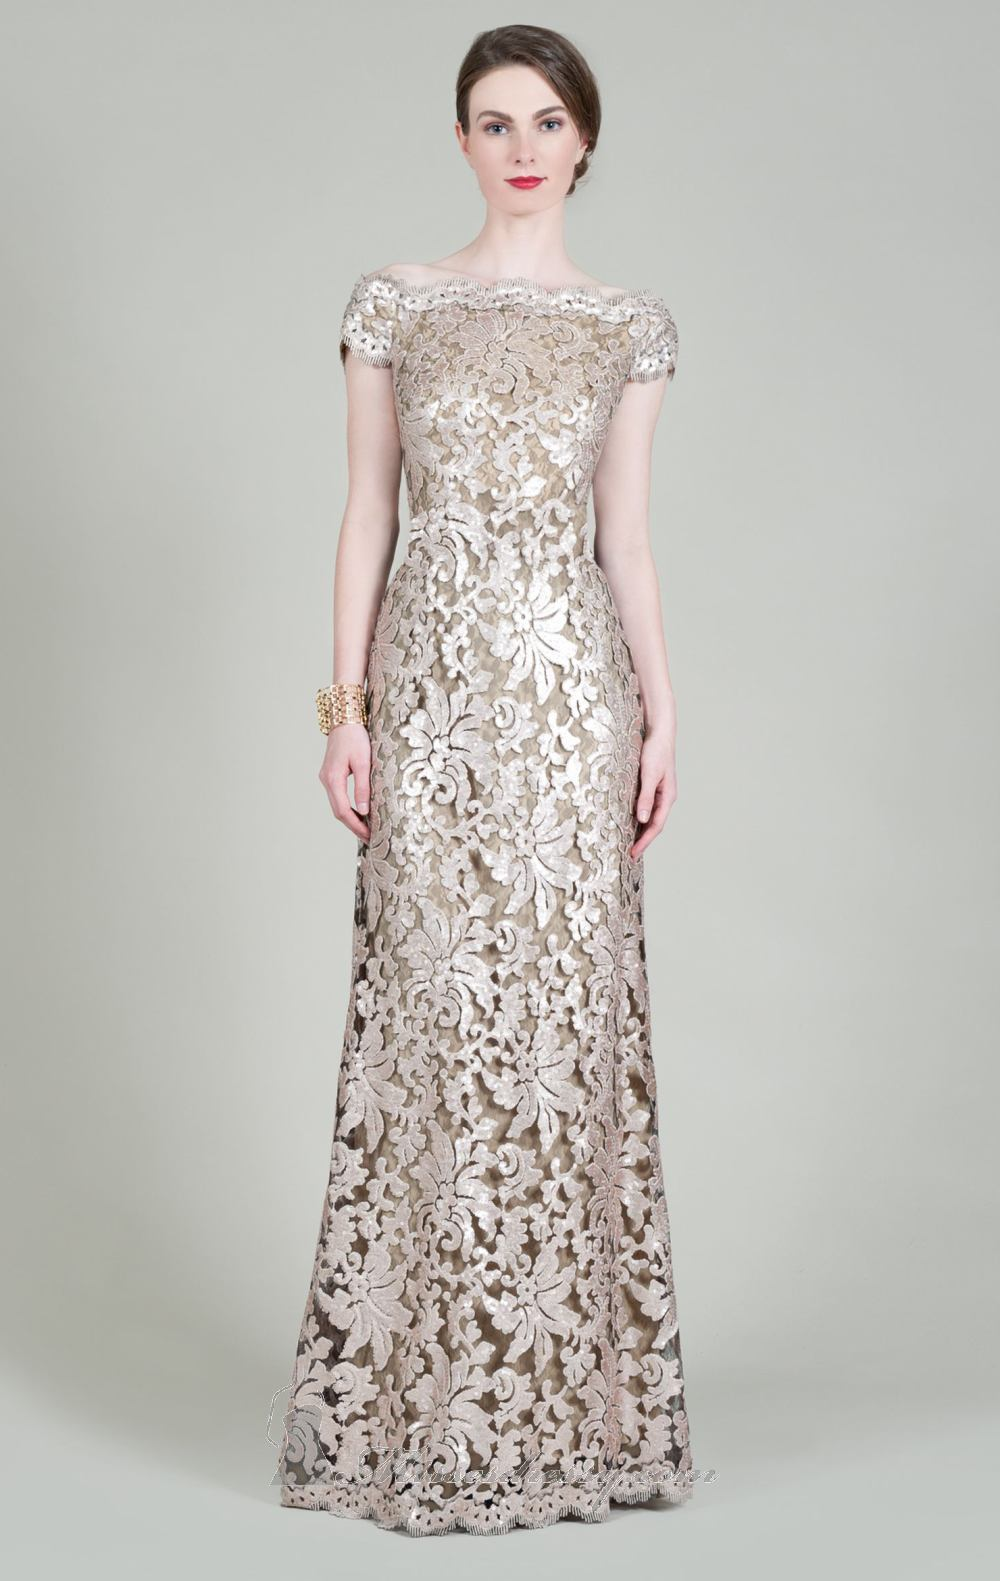 Stunning Non Traditional Wedding Dresses : Stunning non traditional gowns bridal